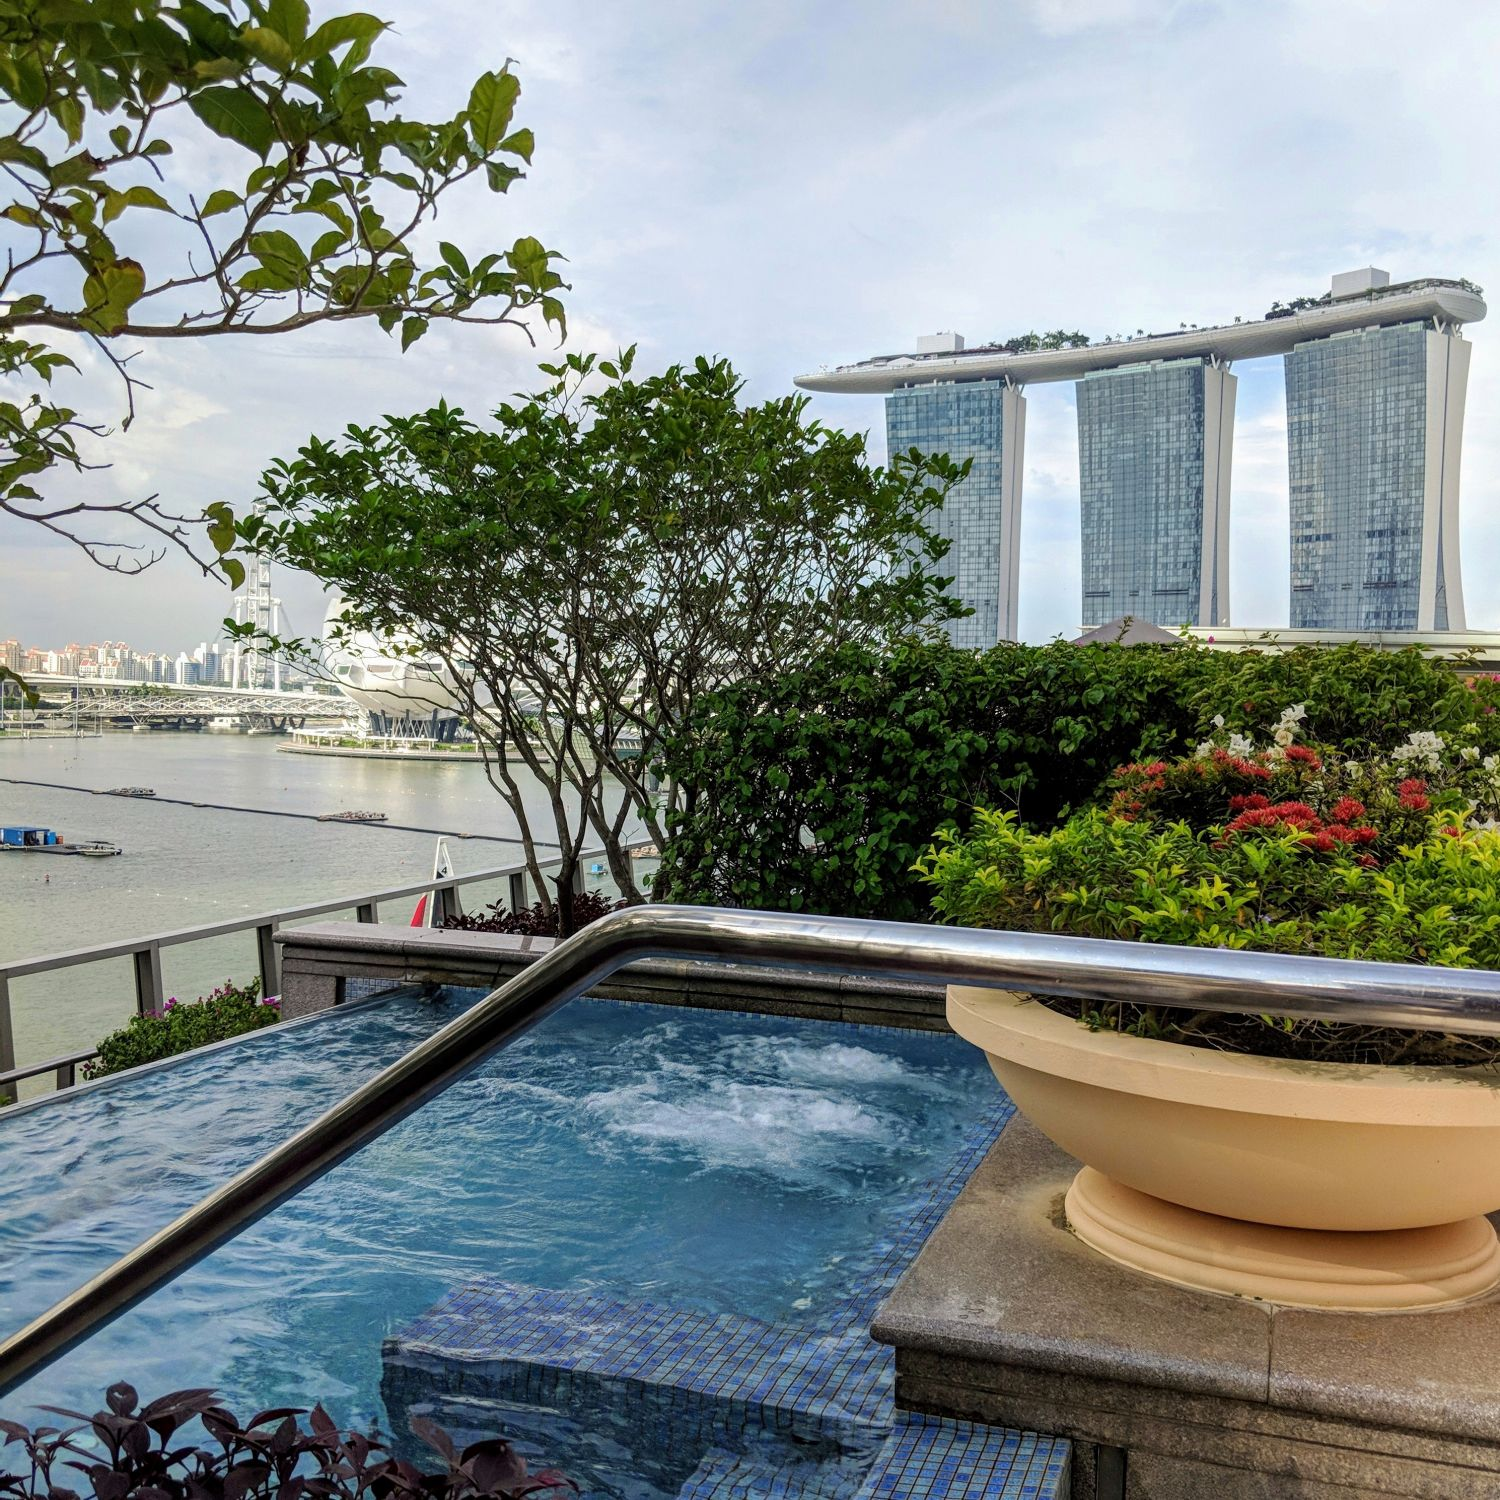 The Fullerton Bay Hotel Singapore Jacuzzi